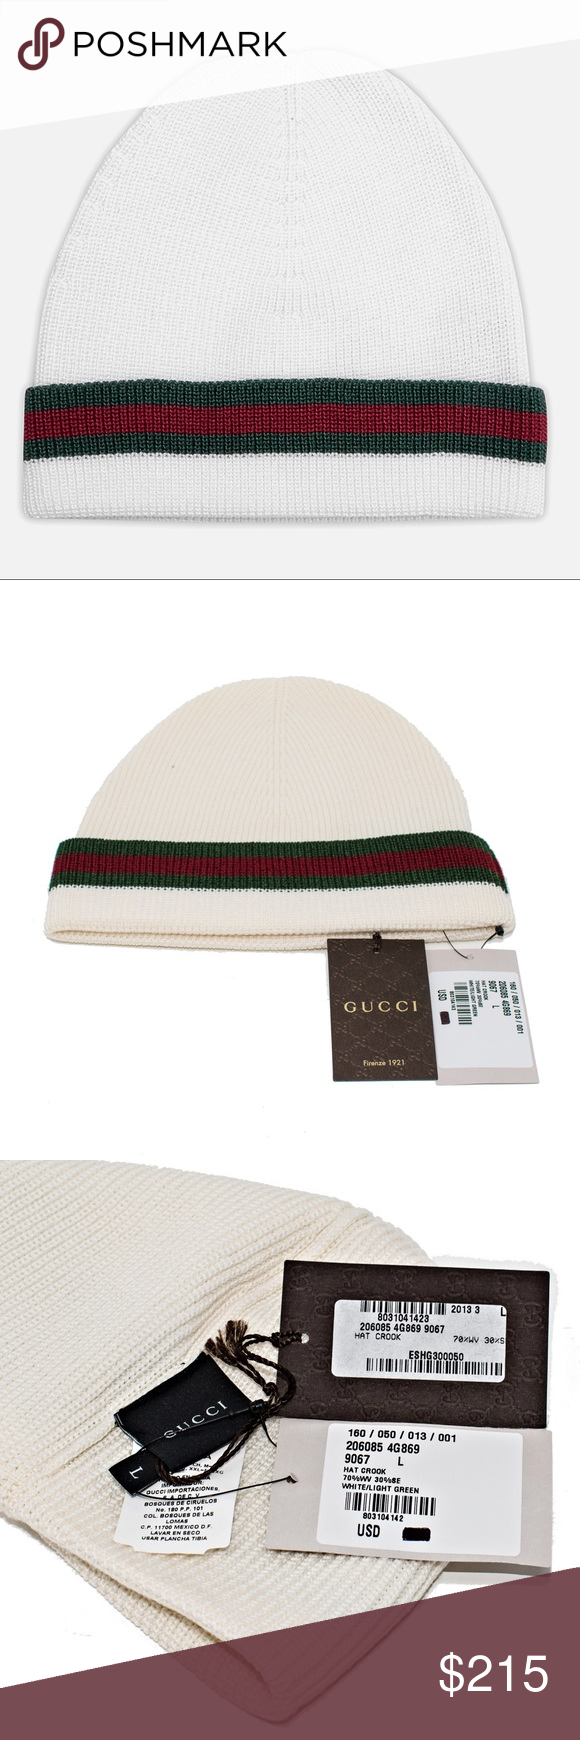 37e38ed0 NEW GUCCI WOOL AND SILK HAT CROOK BEANIE Authentic. Made in Italy. Item  number